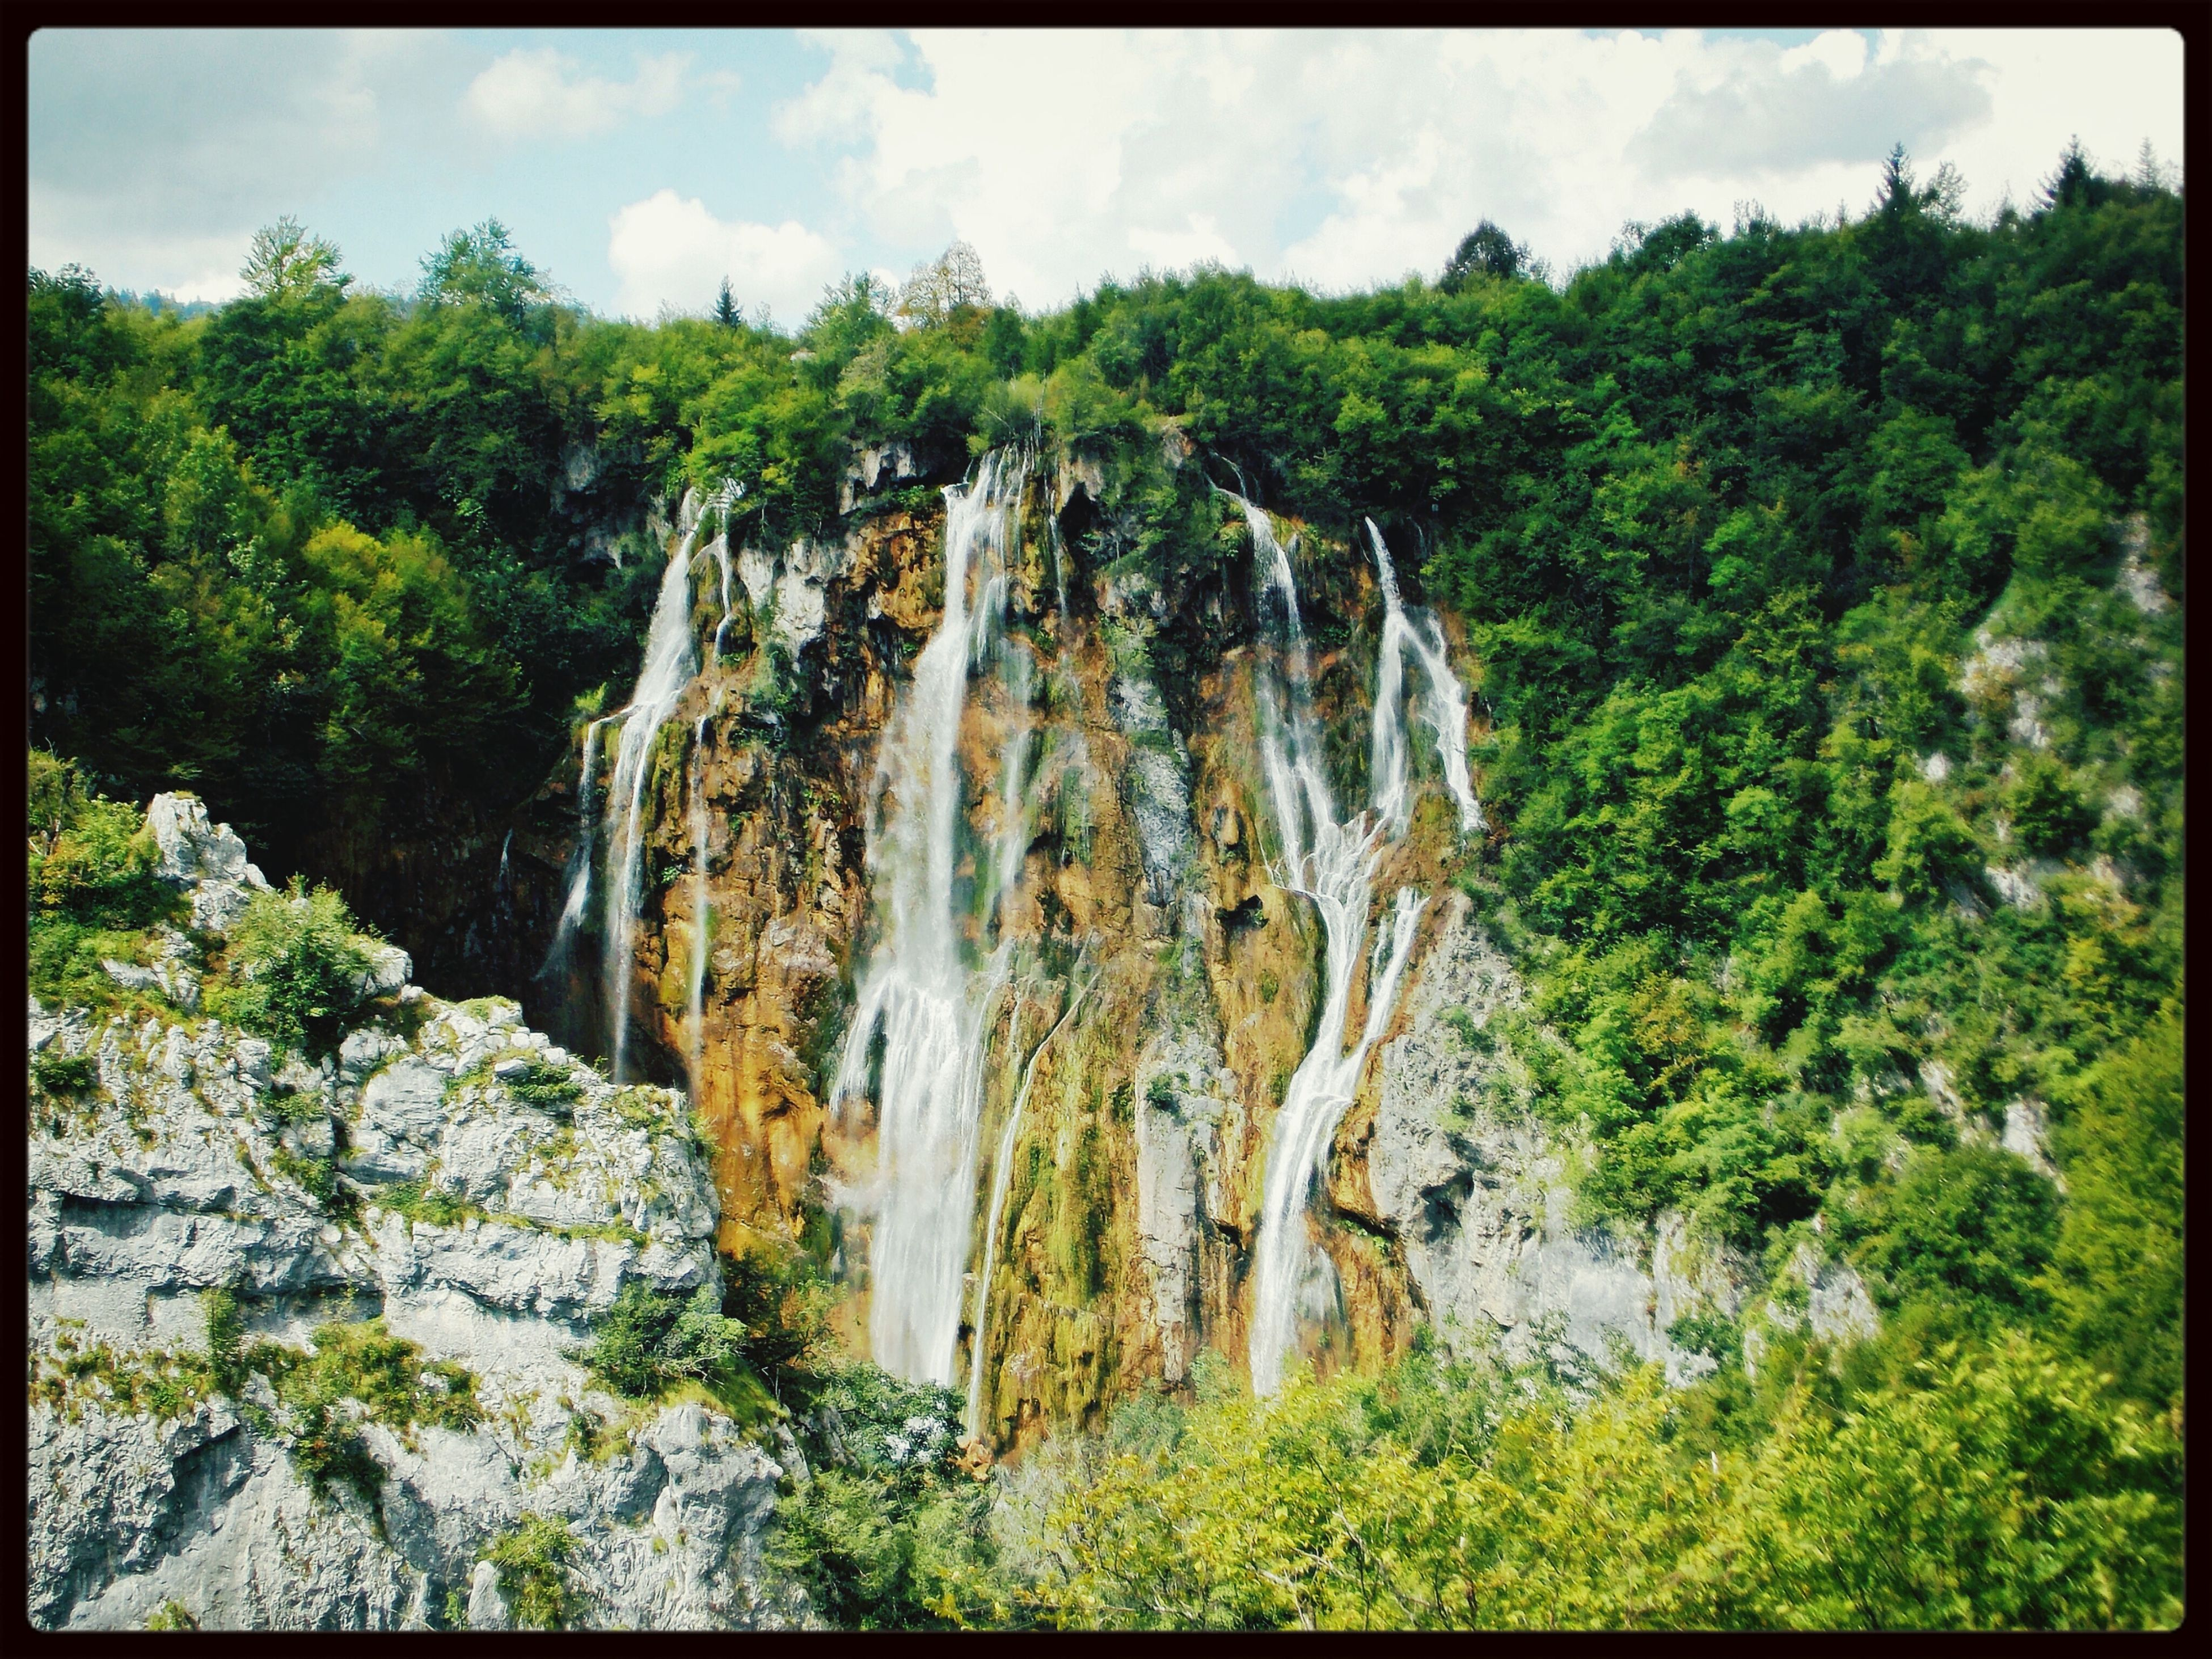 transfer print, tree, auto post production filter, tranquility, scenics, beauty in nature, tranquil scene, nature, sky, growth, forest, green color, idyllic, rock - object, low angle view, non-urban scene, rock formation, day, panoramic, outdoors